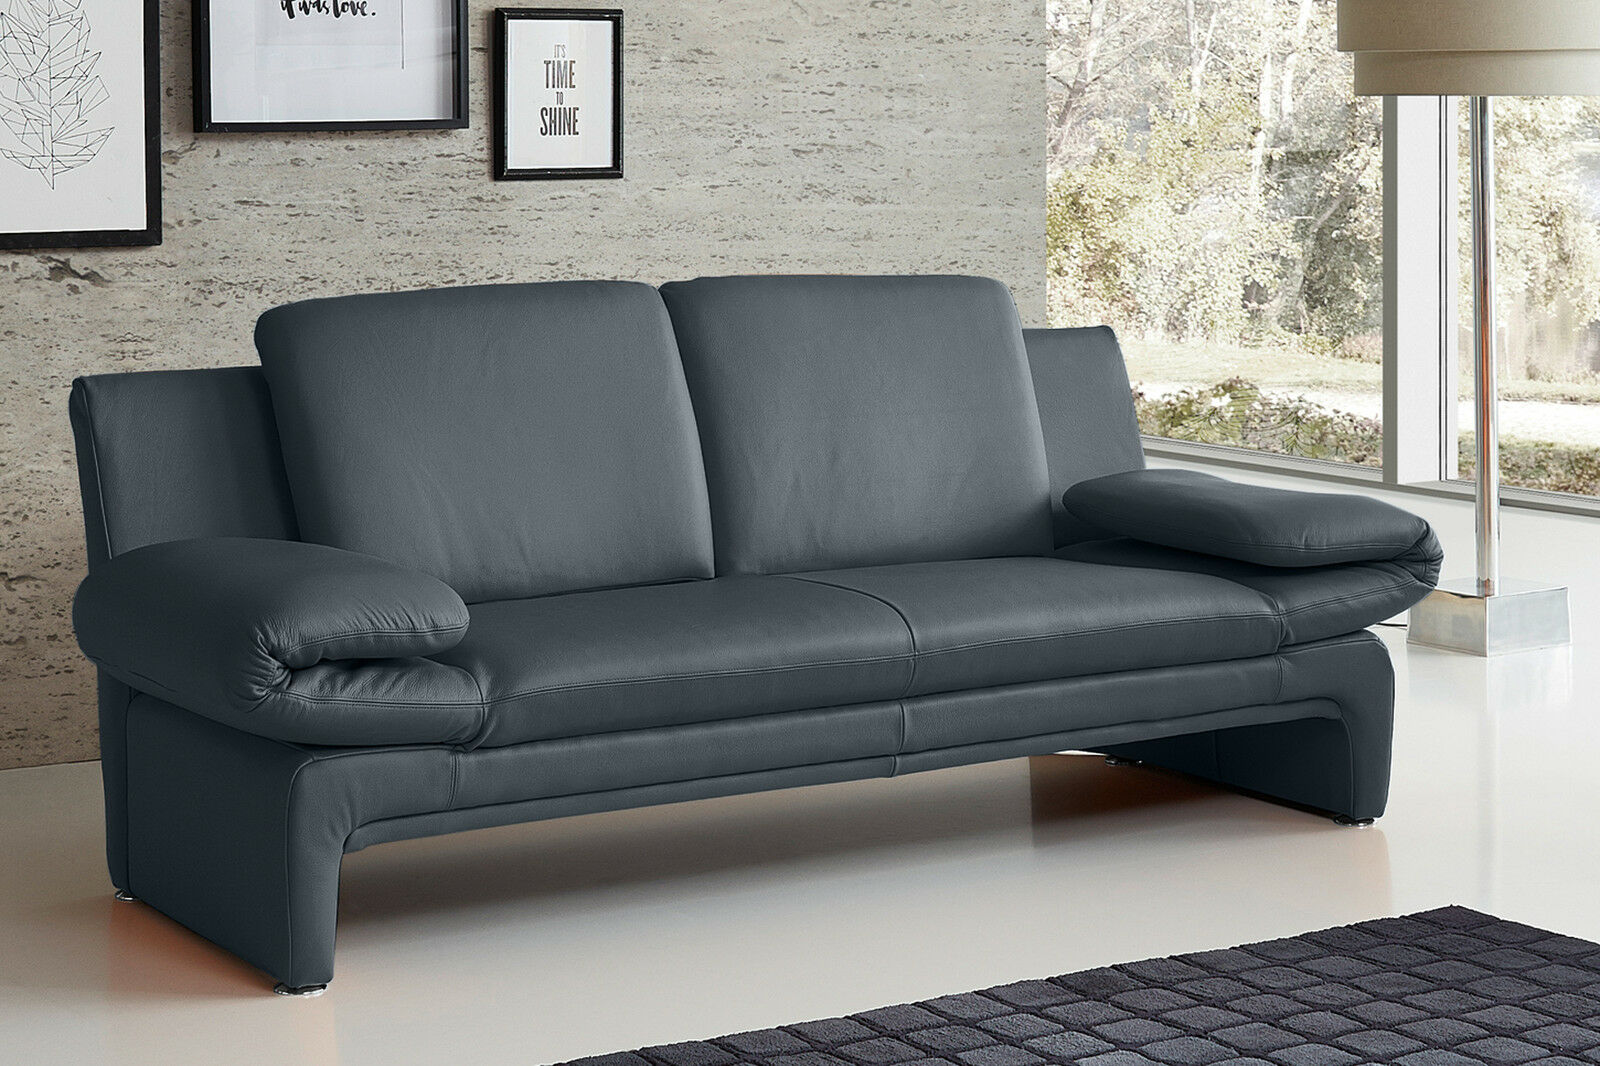 echt dick leder sofa couch garnitur funktionssofa capri 2 sitzer oder 3er neu eur. Black Bedroom Furniture Sets. Home Design Ideas